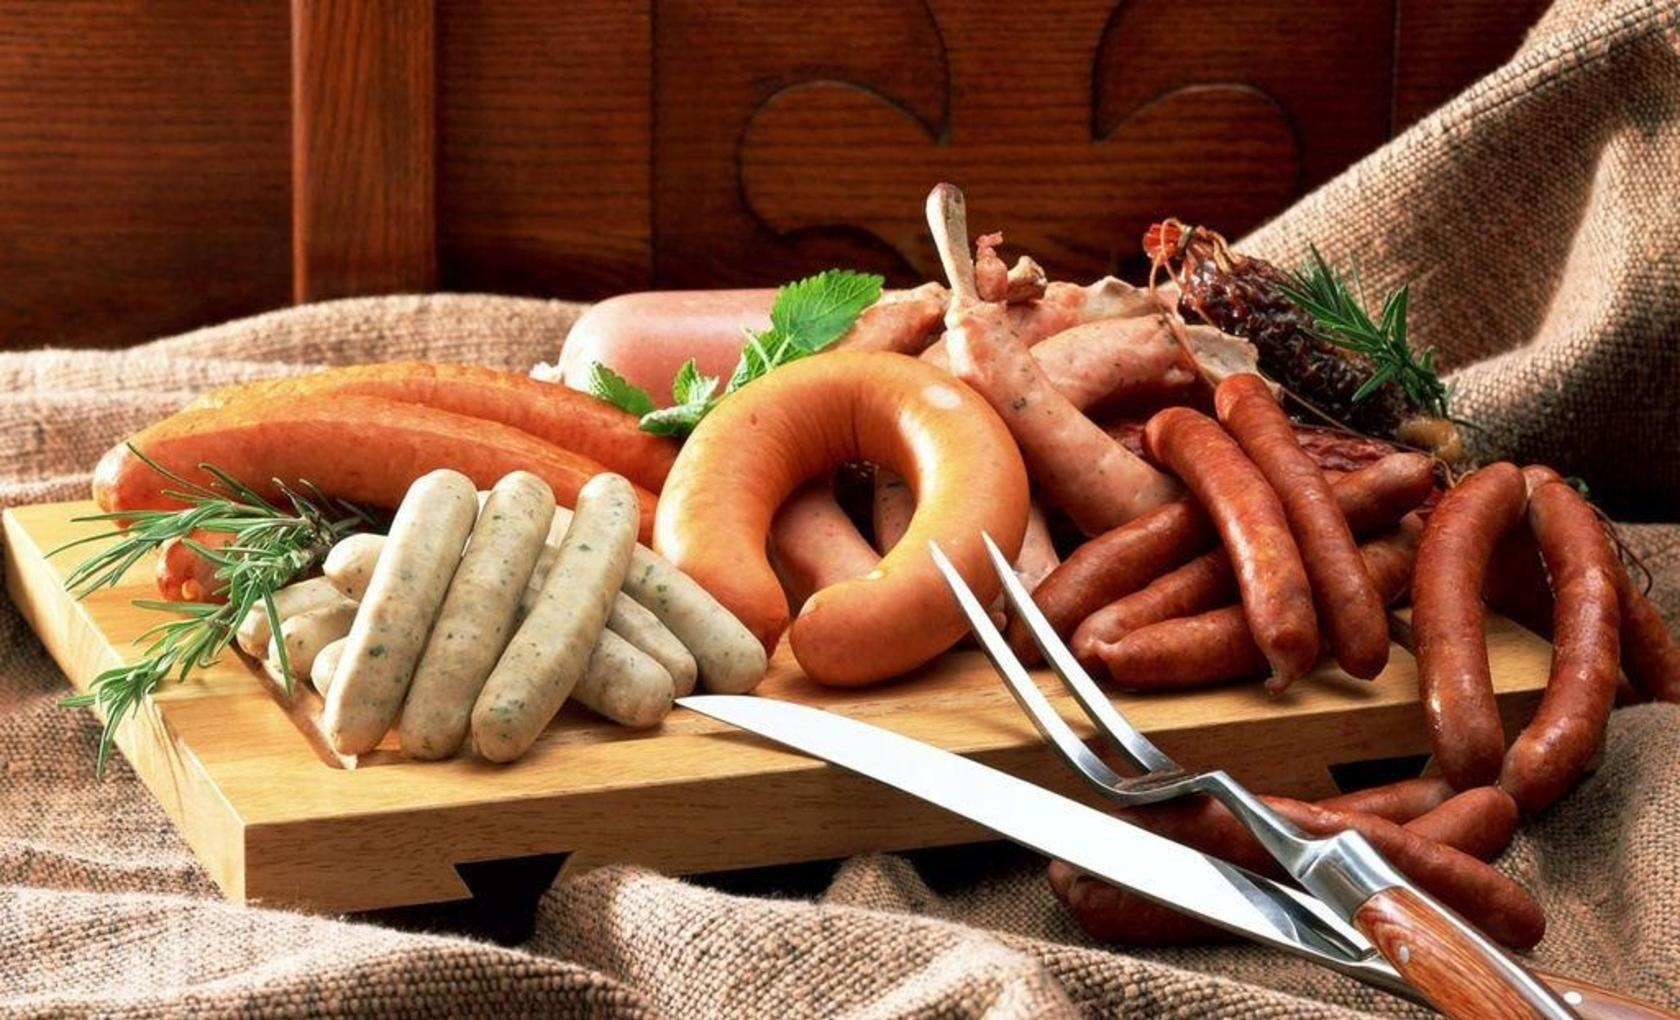 Image Vienna sausage Food Meat products 1680x1020